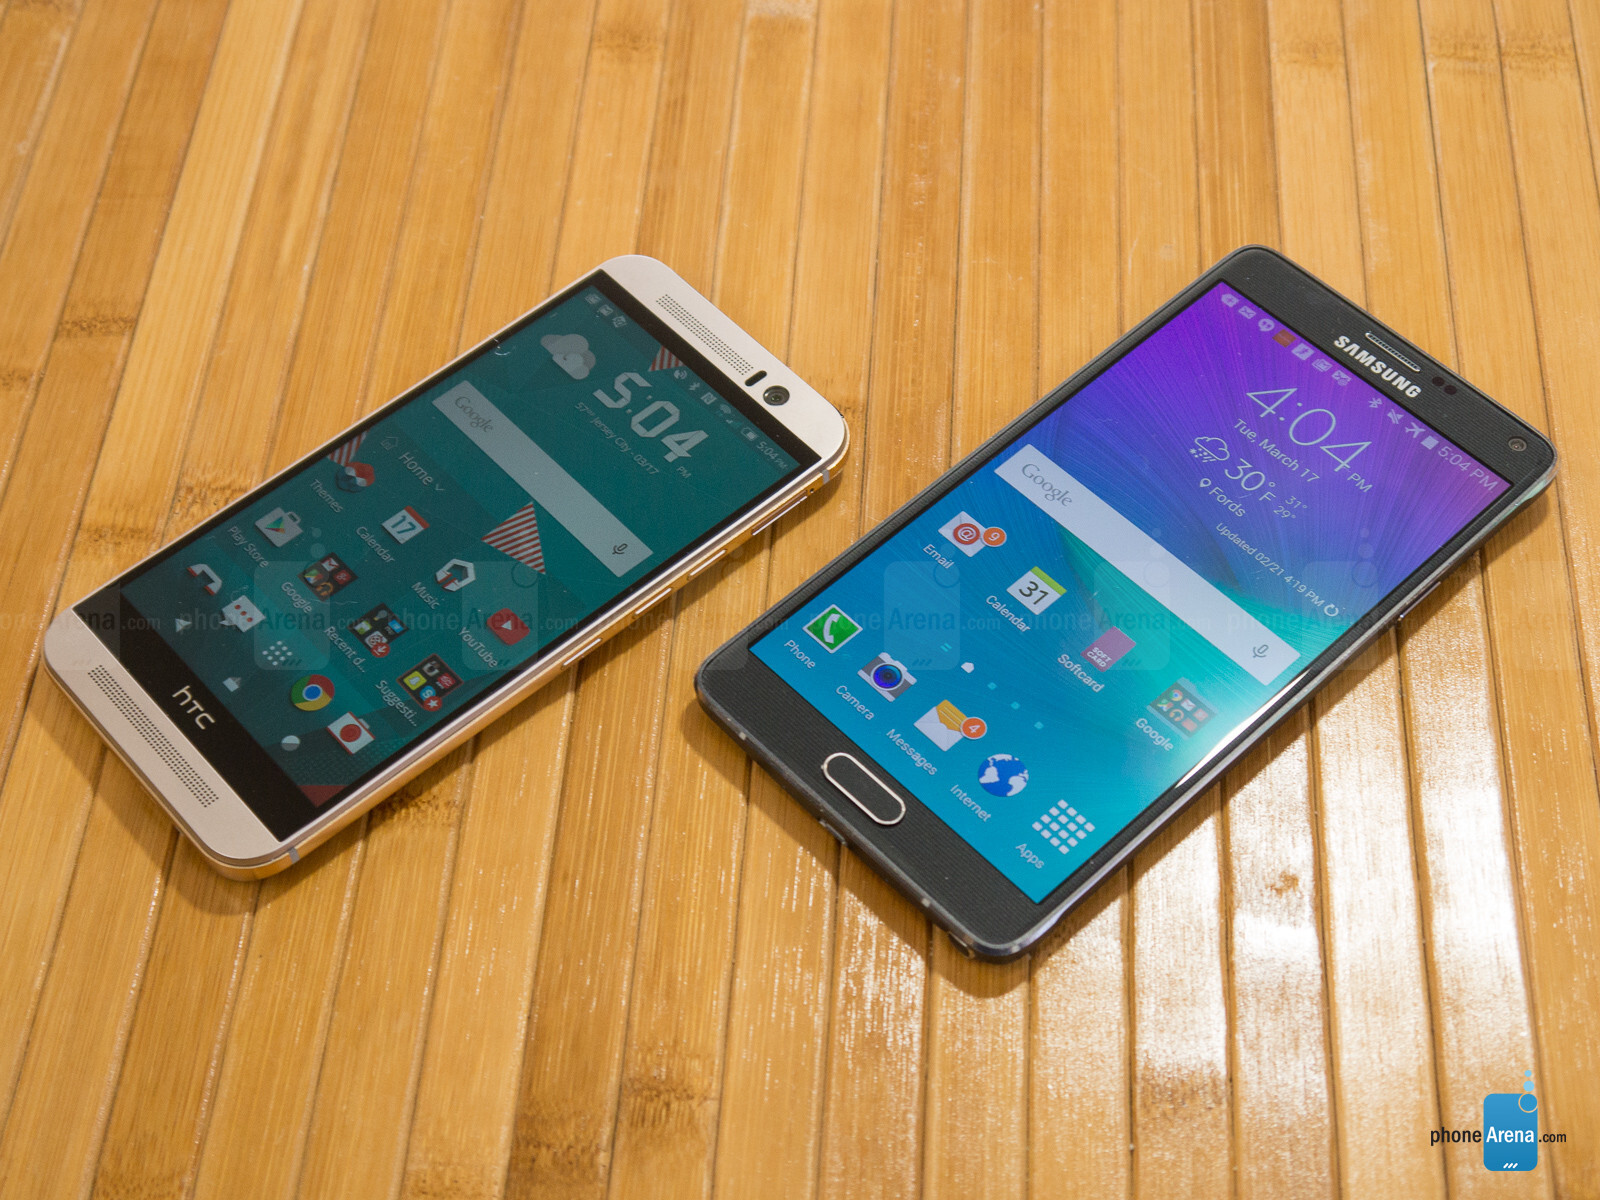 Htc One m9 vs Samsung Galaxy